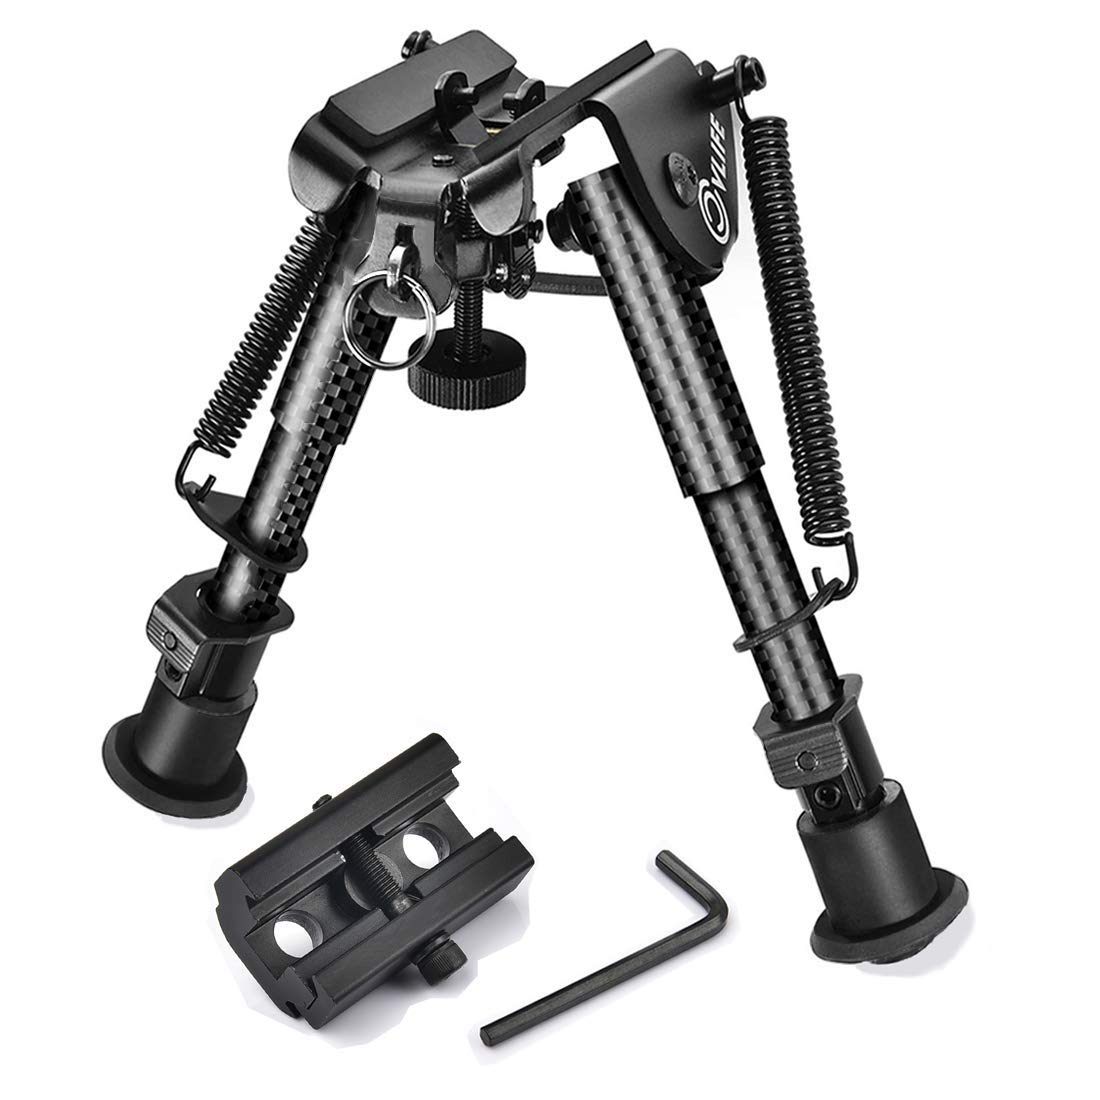 CVLIFE 6-9 Inches Carbon Fiber Rifle Bipod with Picatinny Adapter by CVLIFE